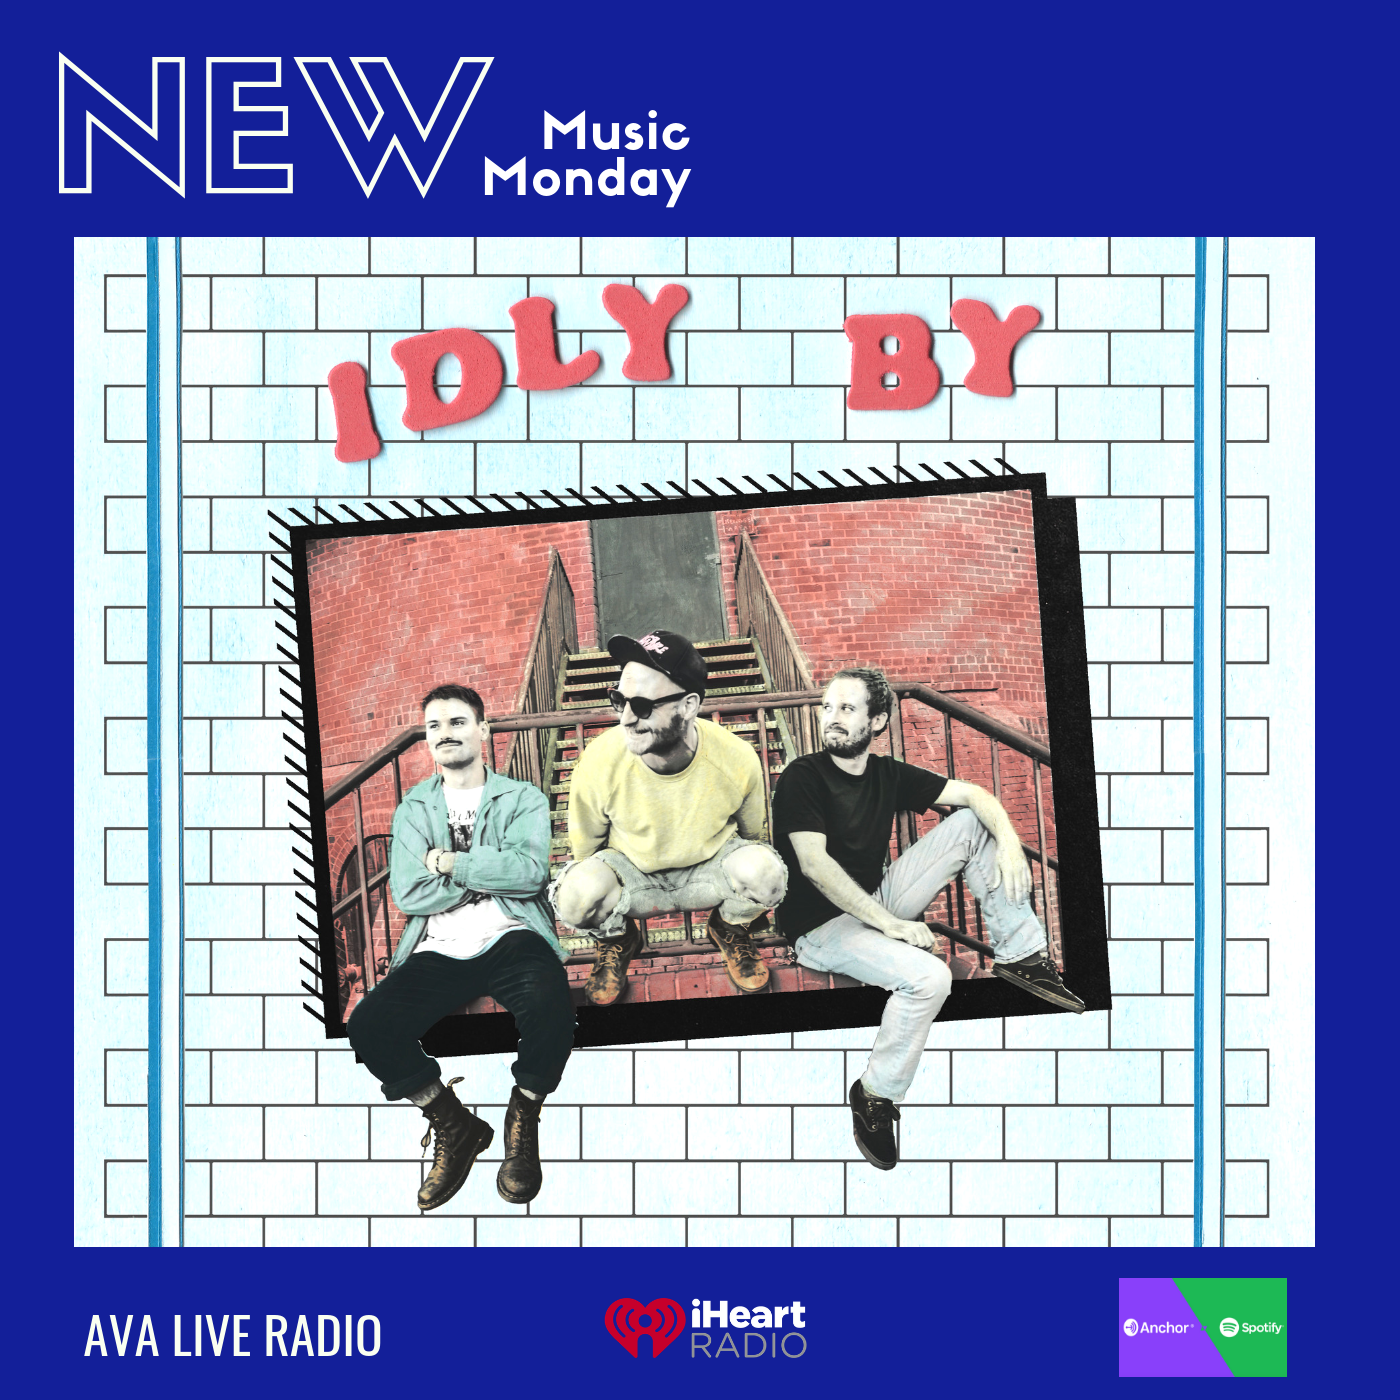 Idly By avaliveradio newmusicmonday.png